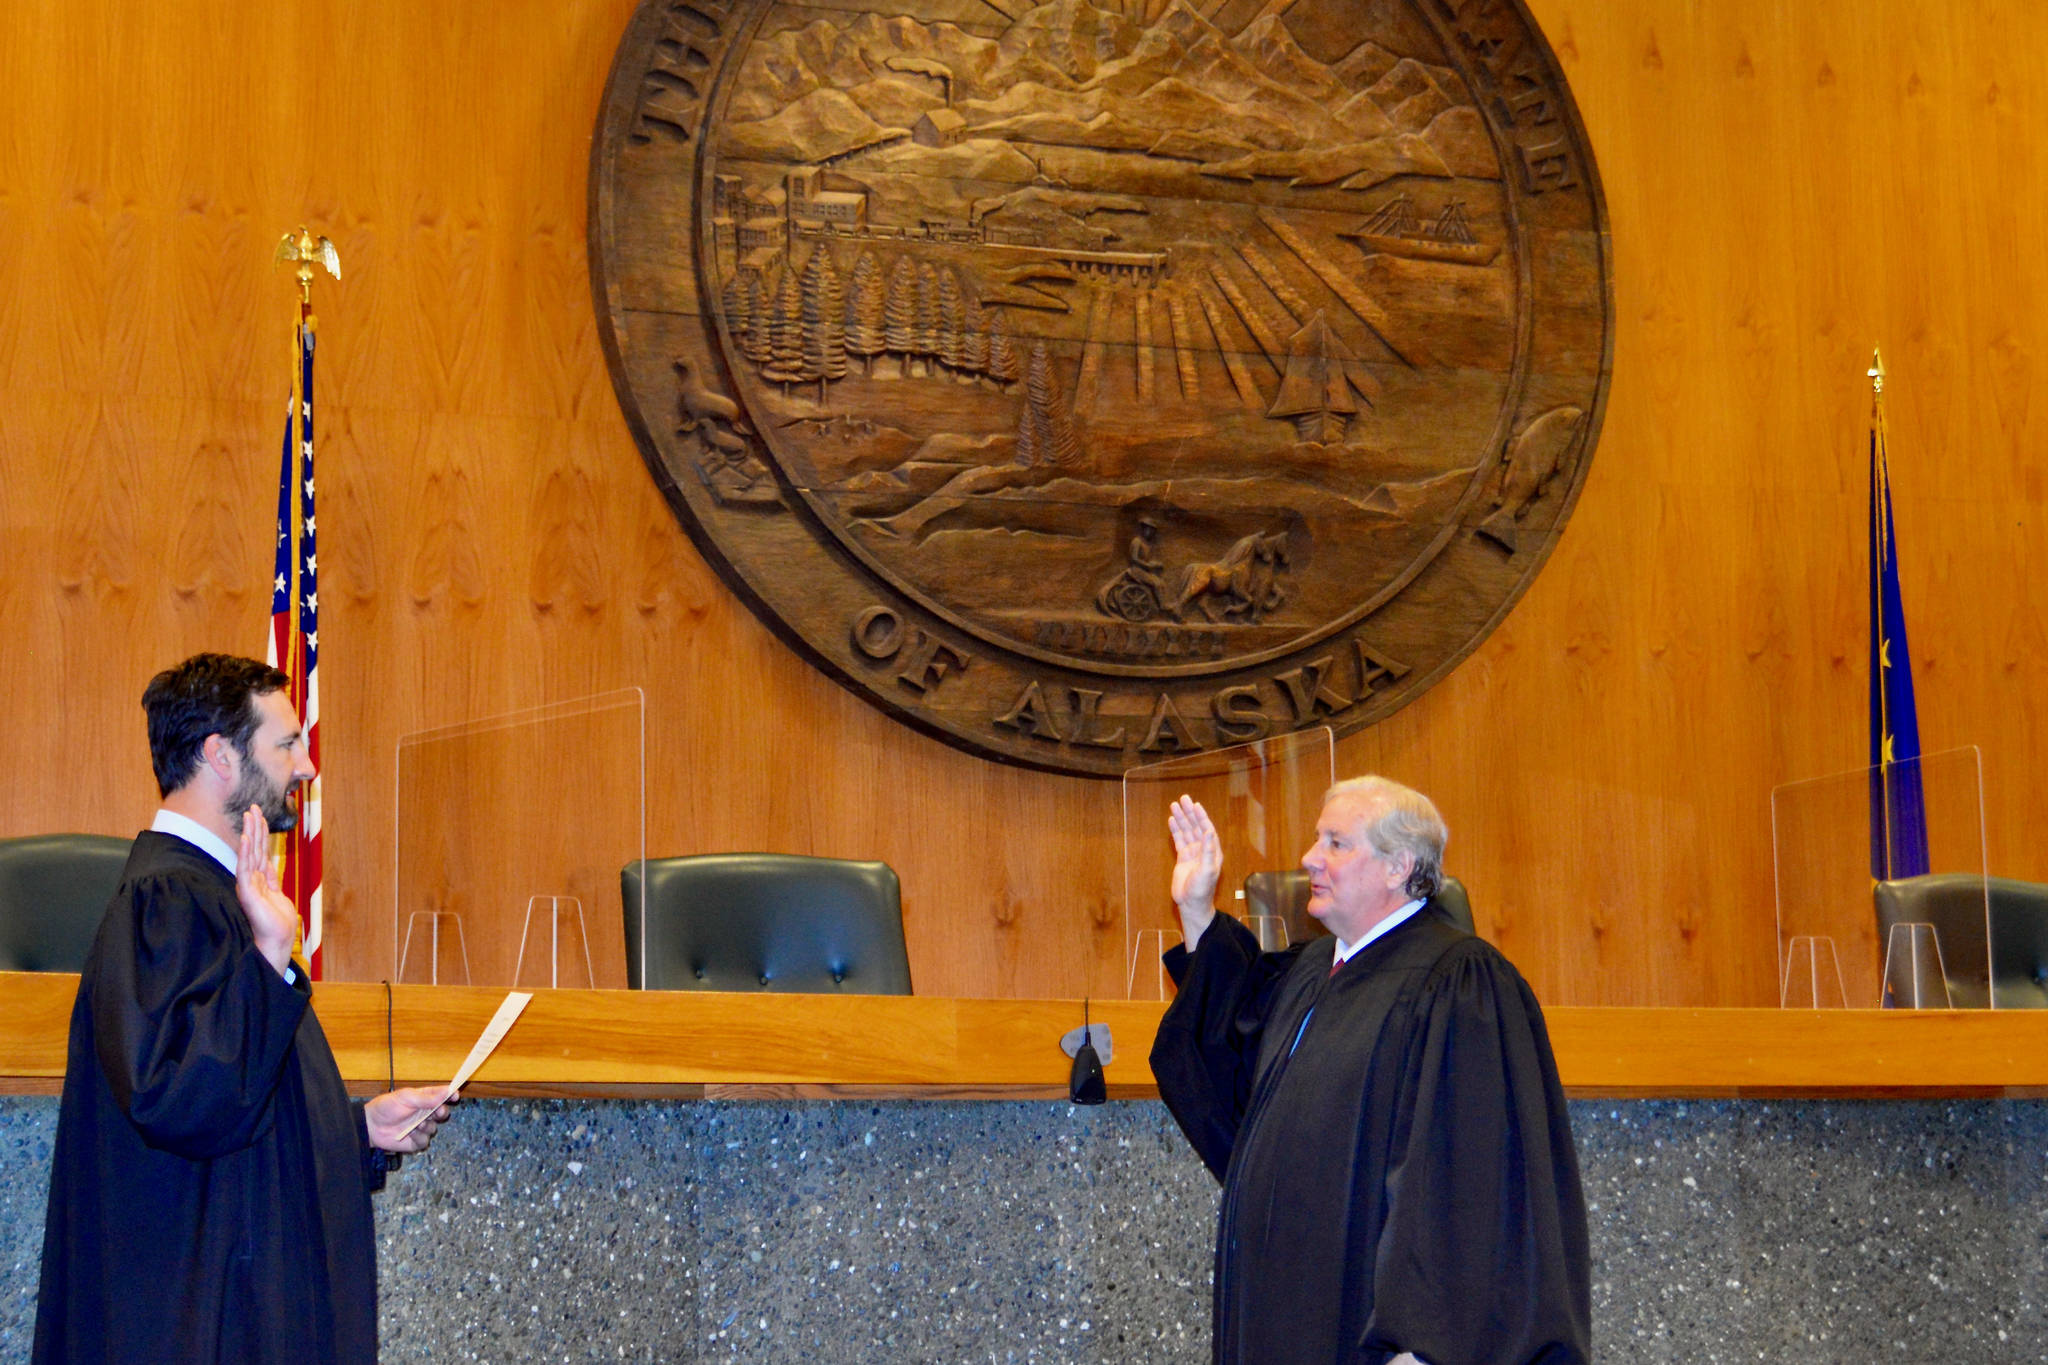 Courtesy photo / Alaska Court System  Chief Justice Daniel E. Winfree, right, is sword in by Justice Dario Borghesan in Anchorage on July 1. Winfree will take over after former Chief Justice Joel Bolger retired earlier this year.